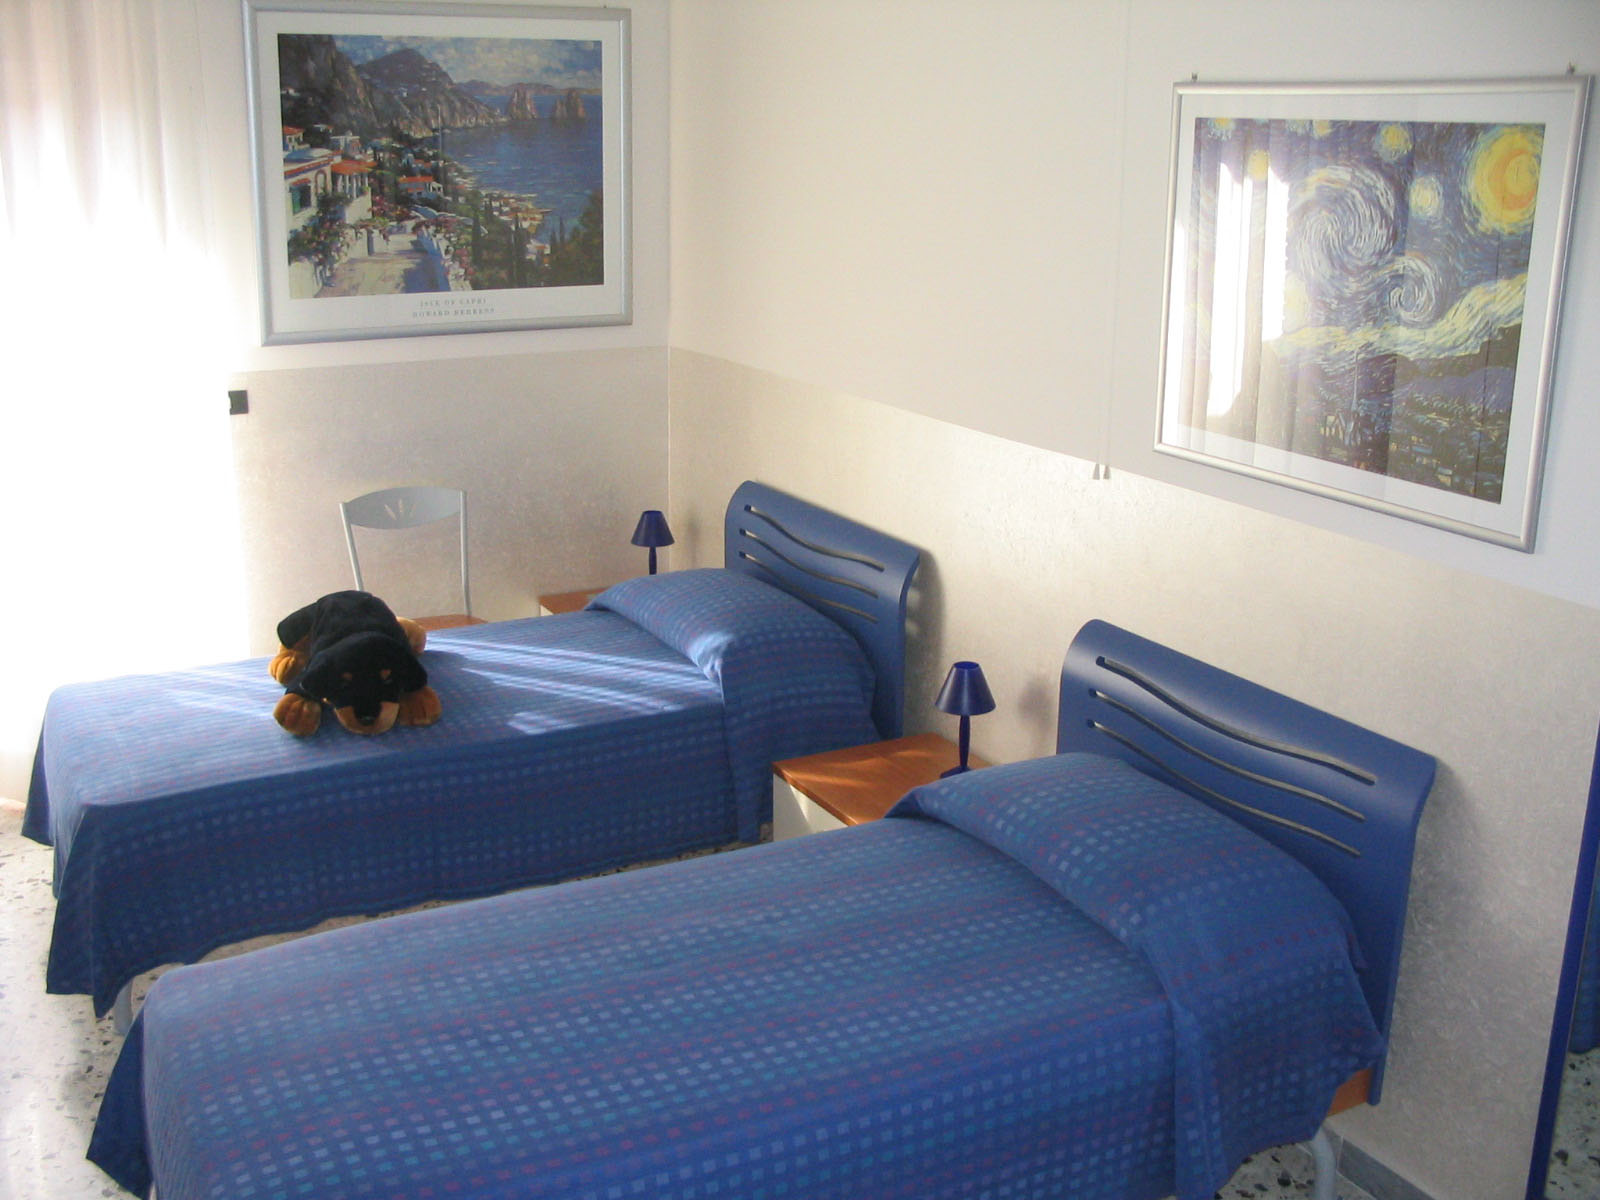 Affitto bed & breakfast mare salerno